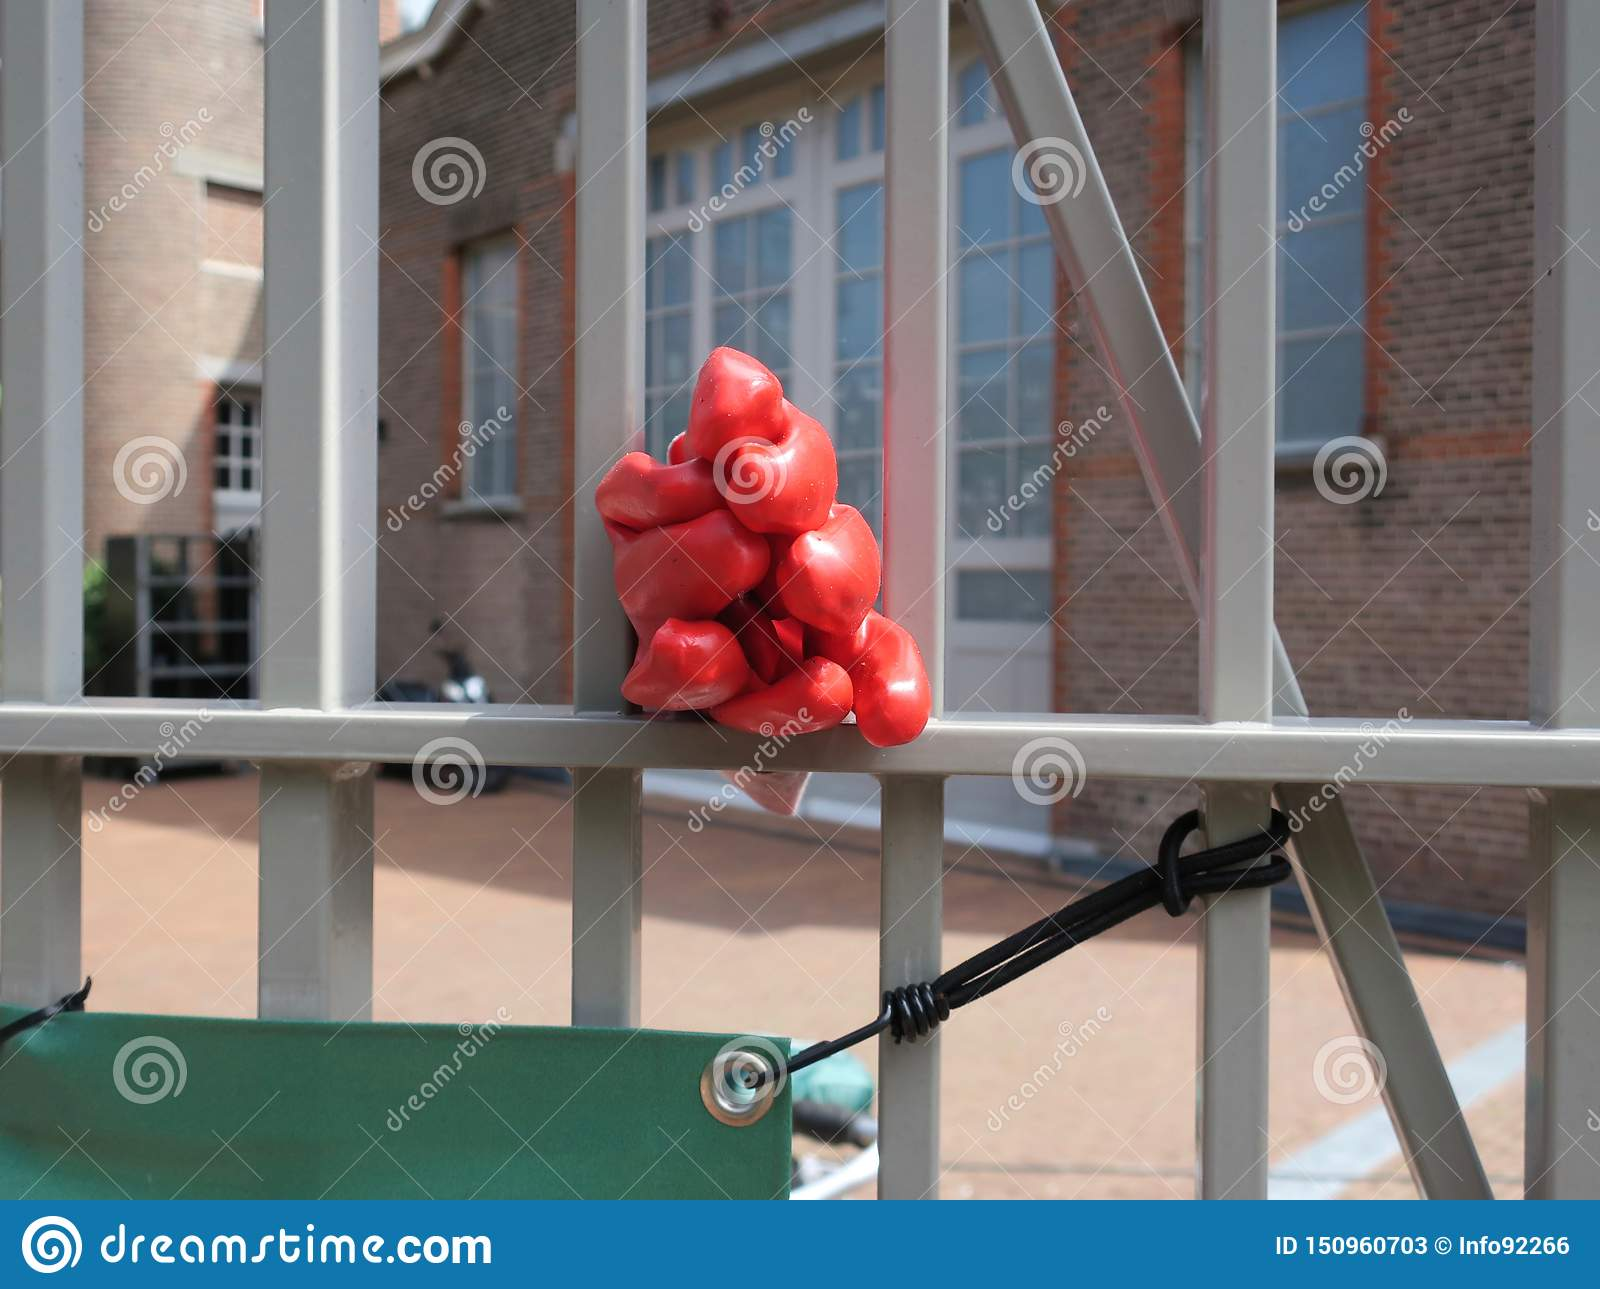 Pair of red plastic working gloves between the bars of a fence